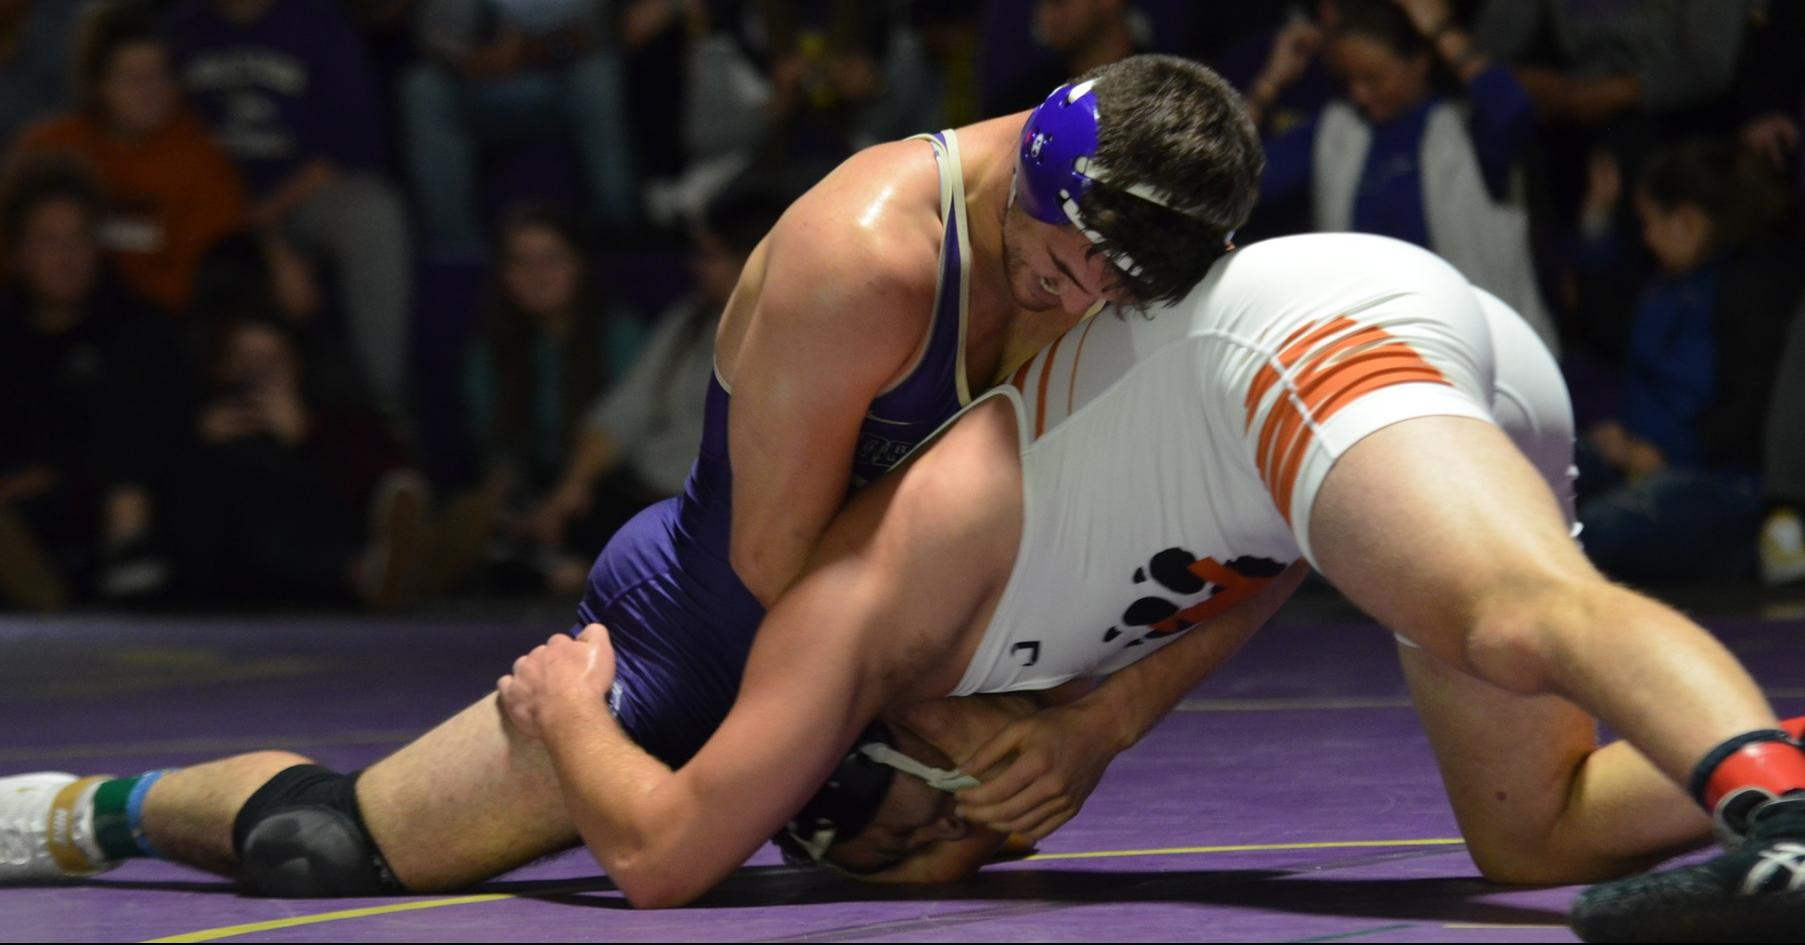 Defiance falls to Lourdes in home dual